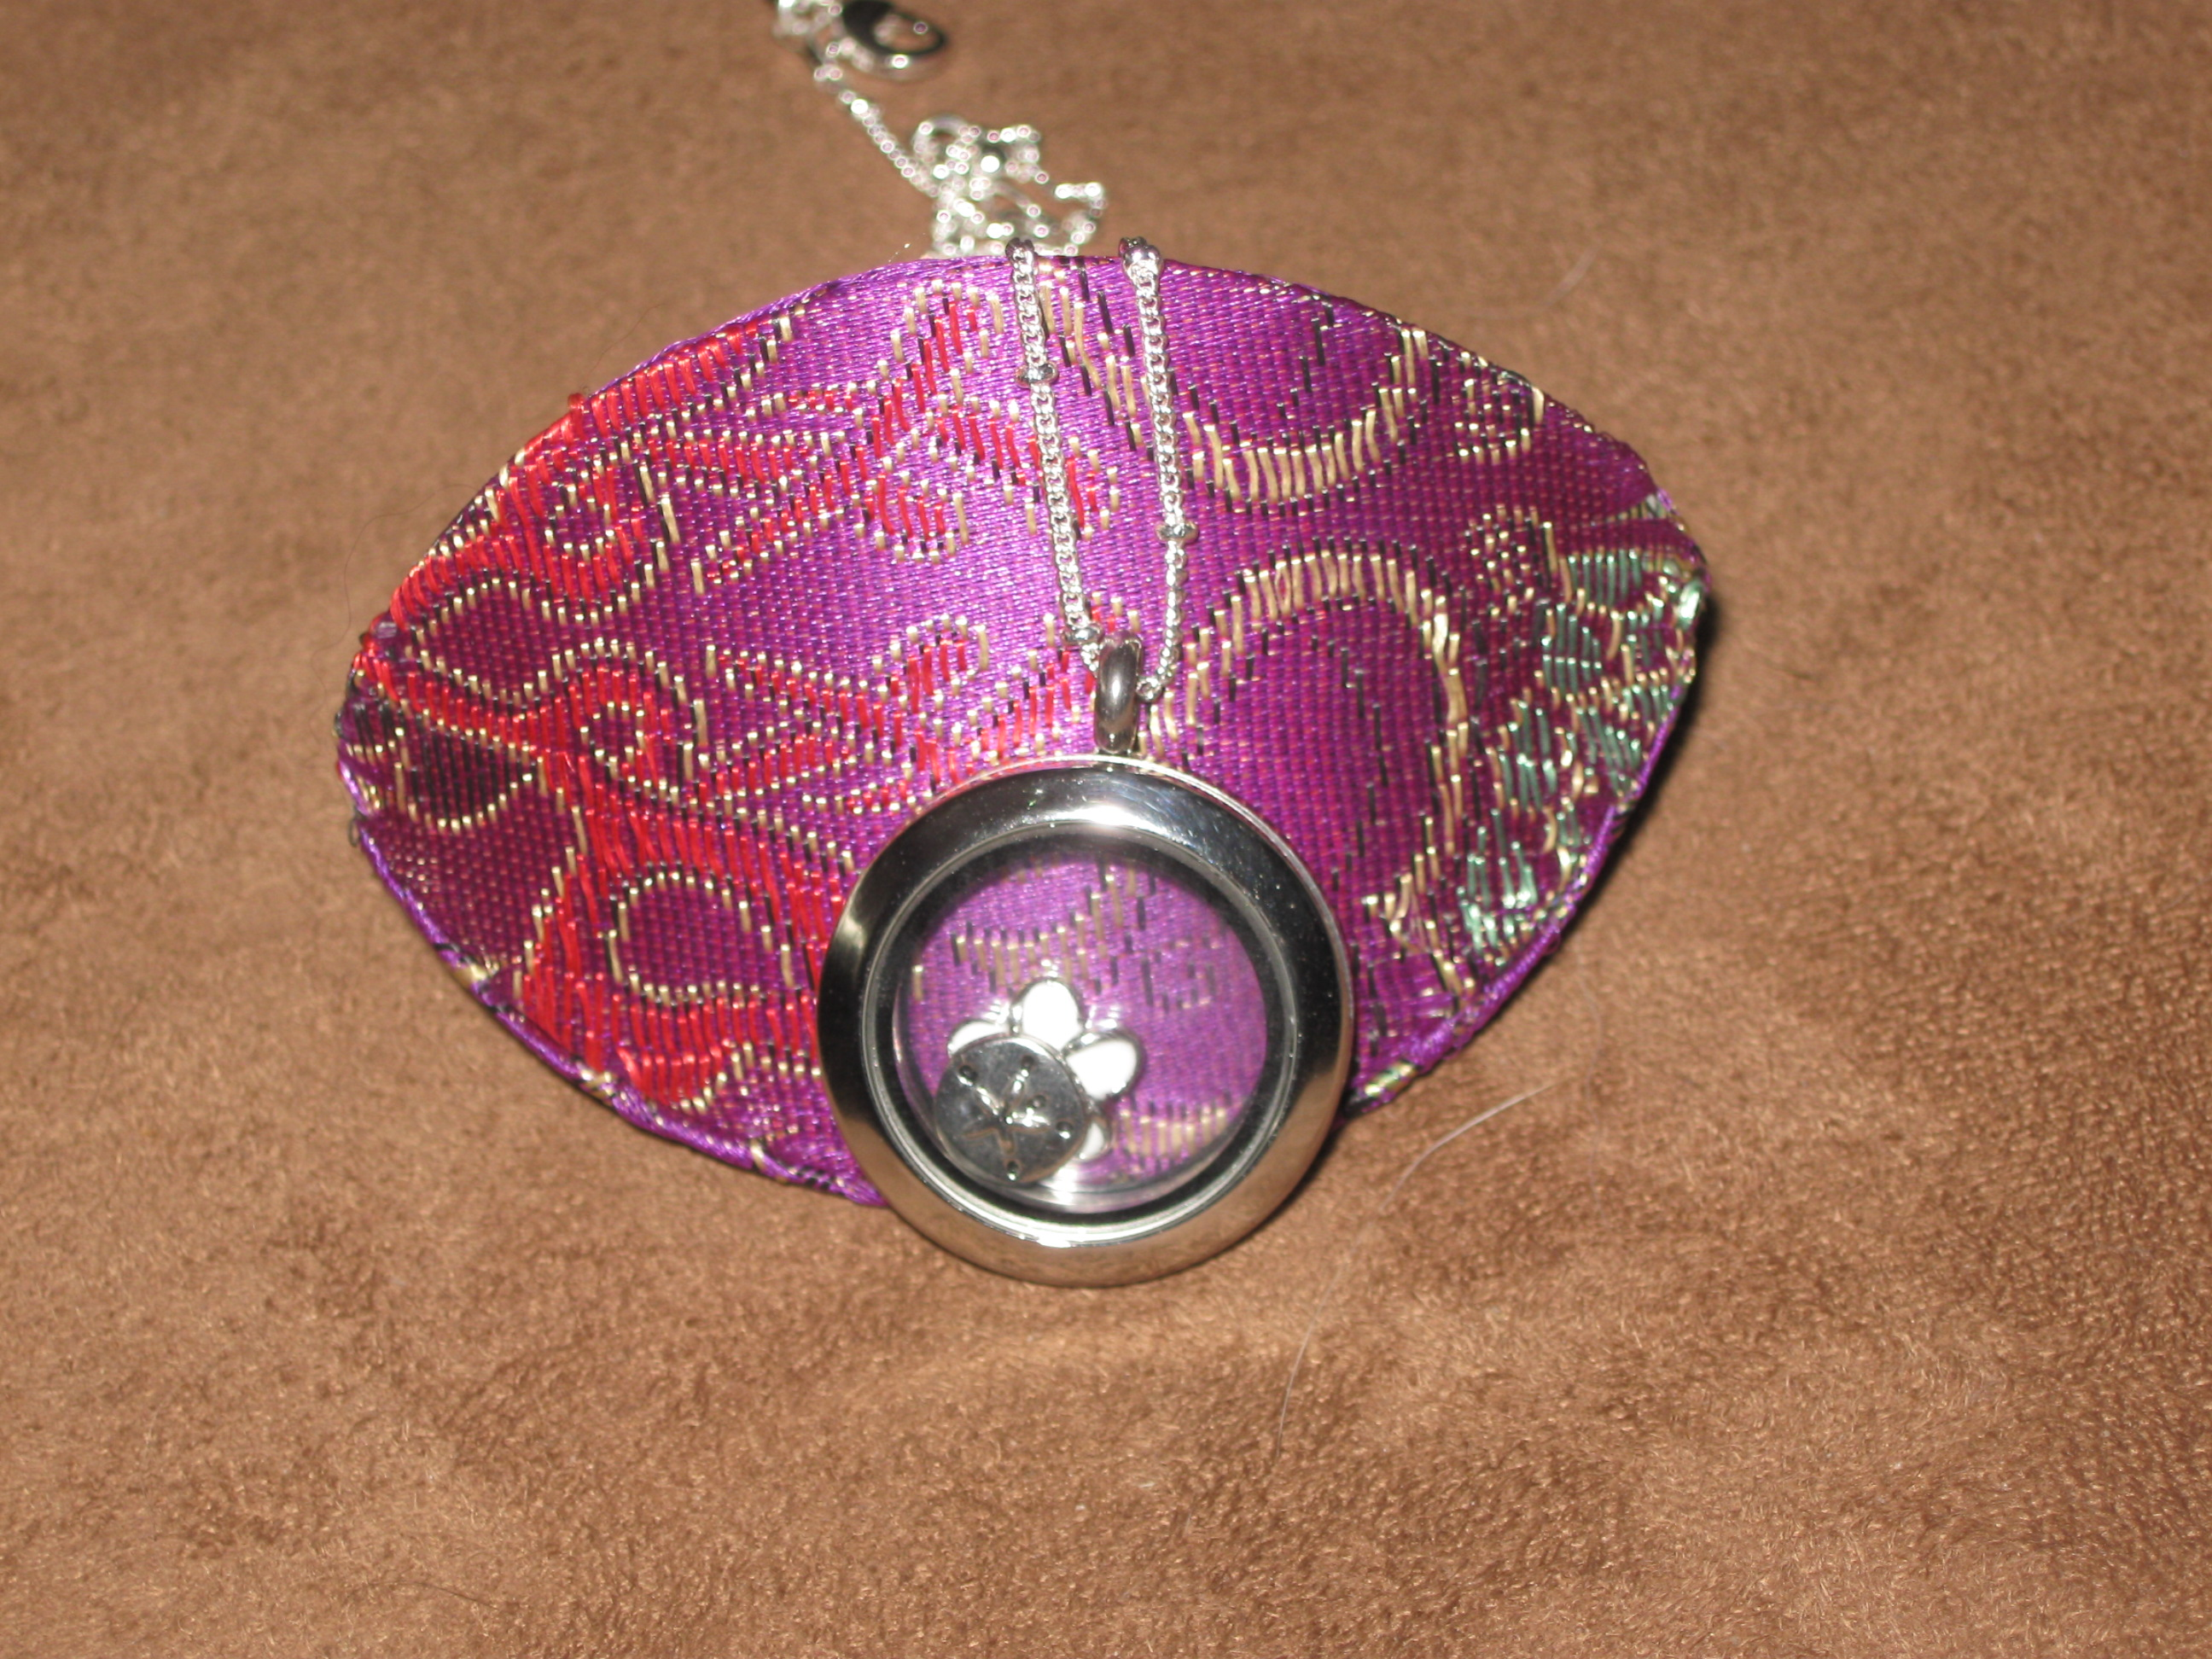 Origami Owl Locket Review and Giveaway- ends 6/16 - photo#19